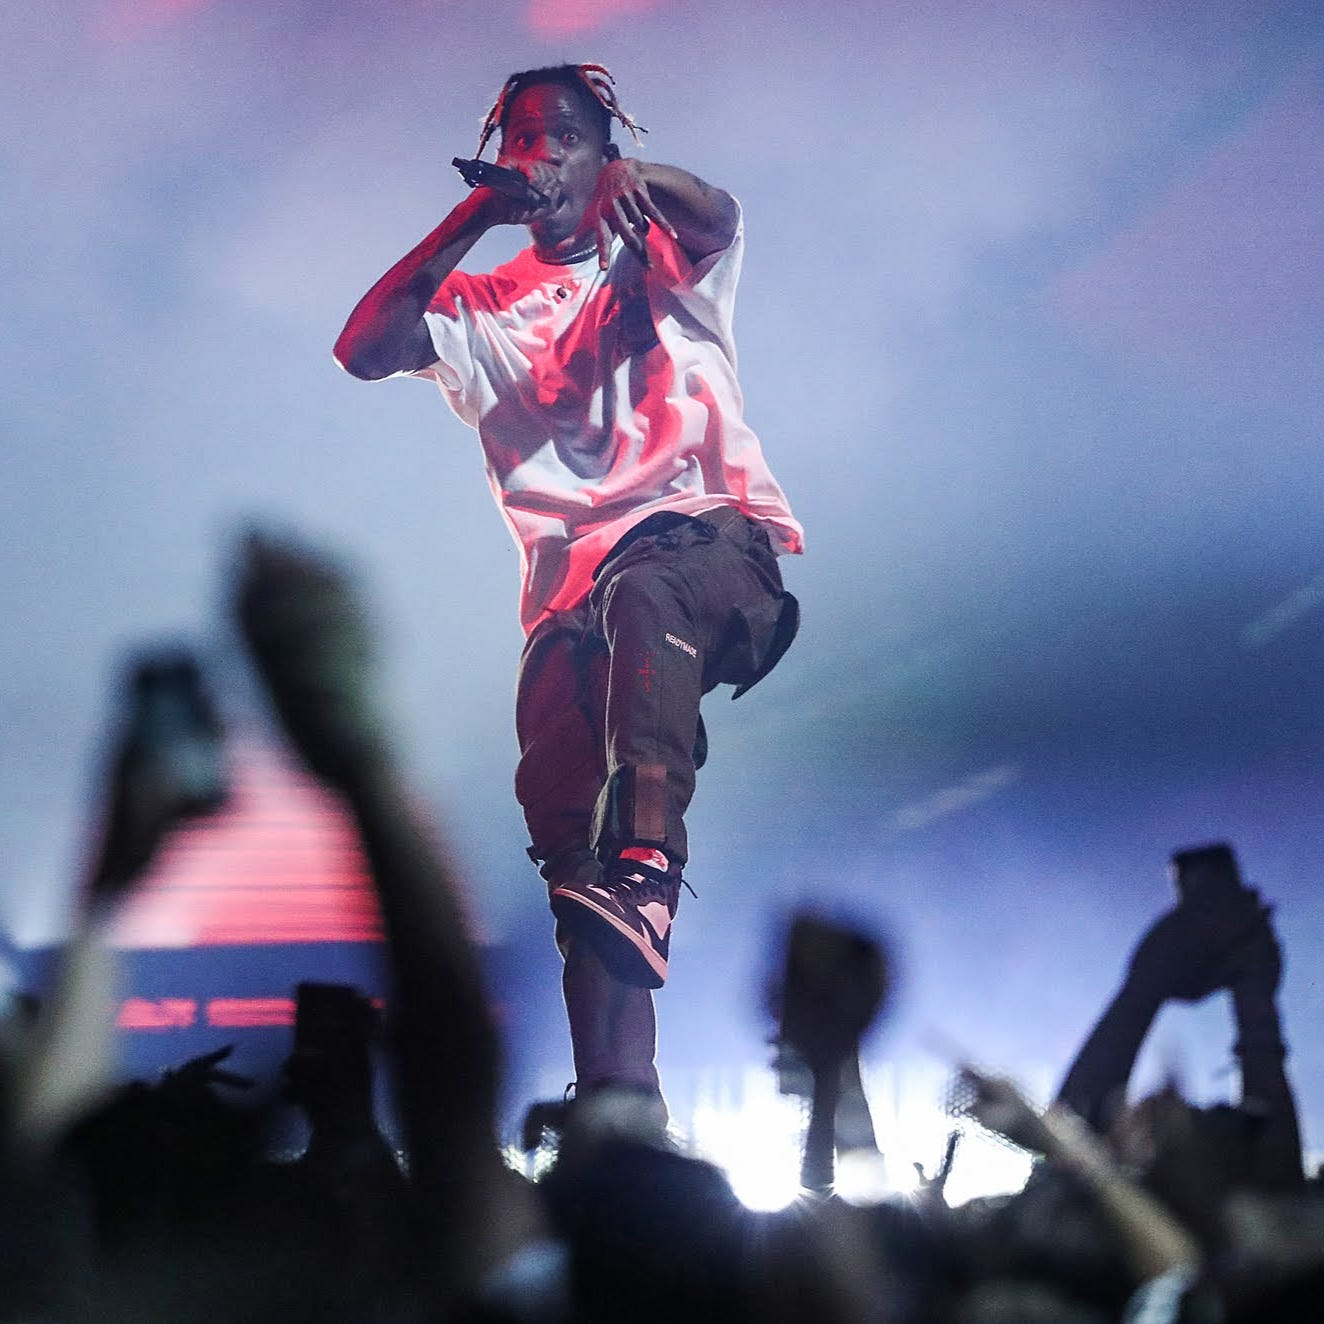 Travis Scott provides thrills for patient fans in Indianapolis